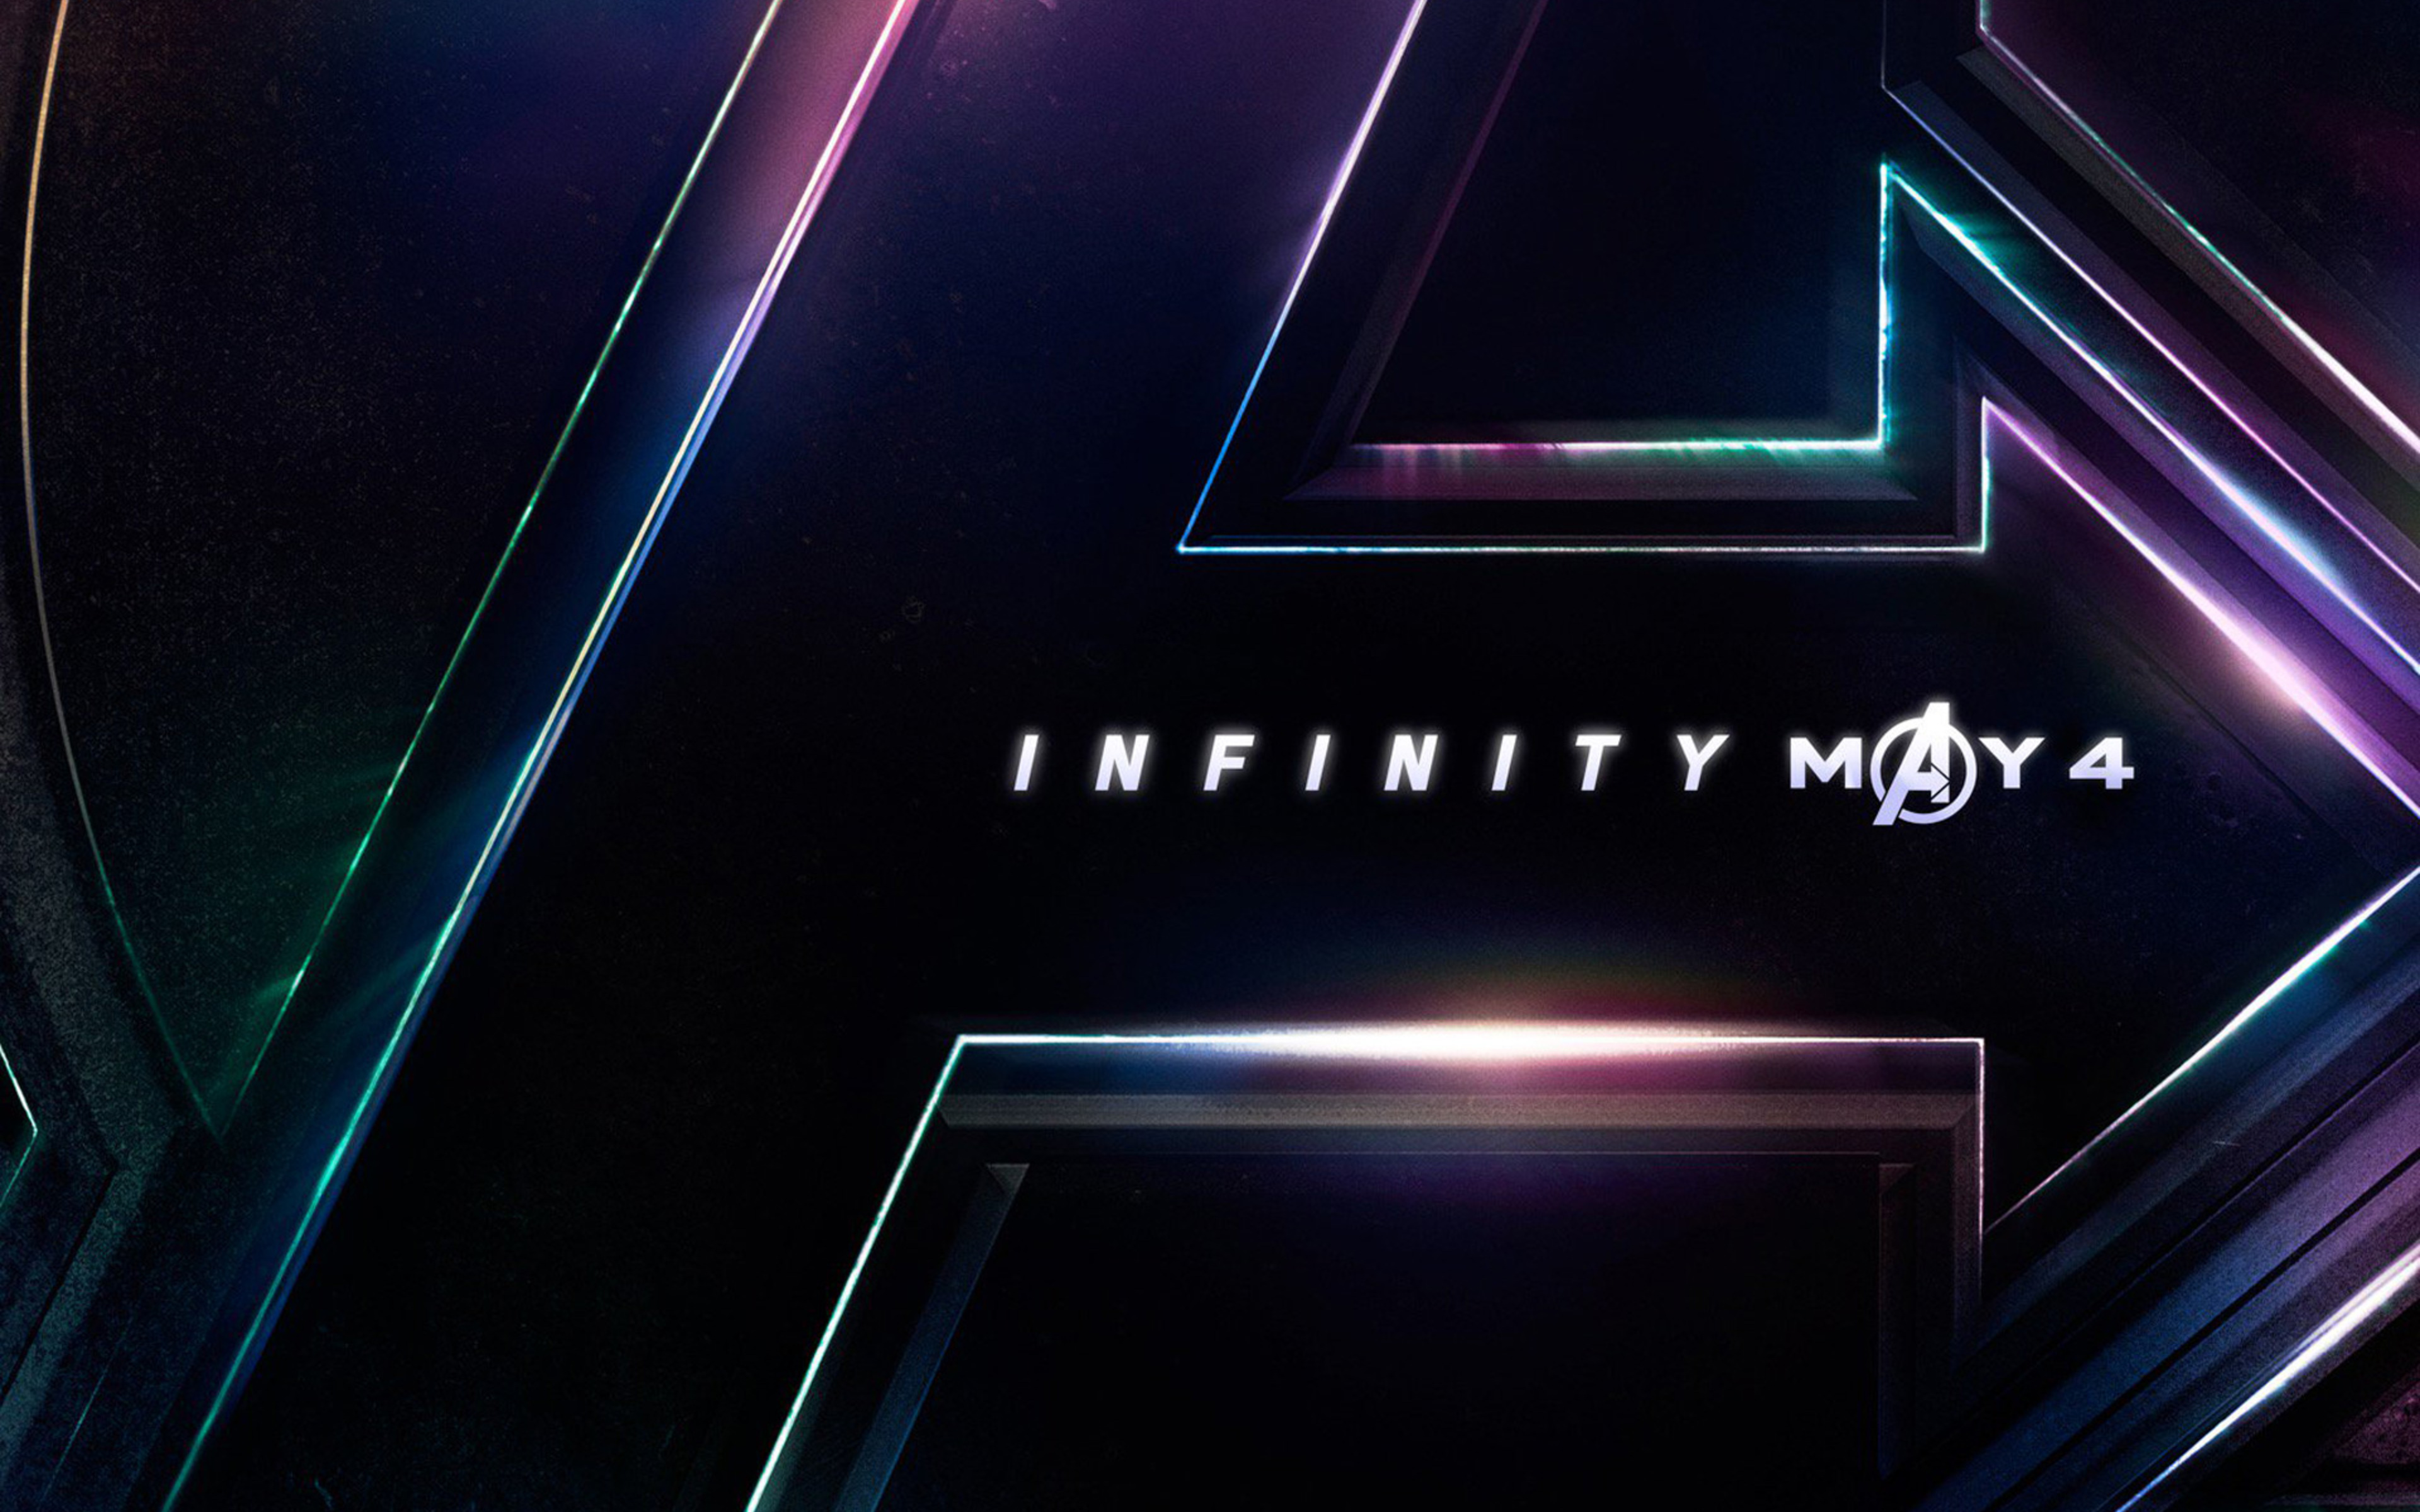 Cool Wallpaper Marvel Neon - avengers-infinity-war-poster-5t-3840x2400  Collection_25103.jpg